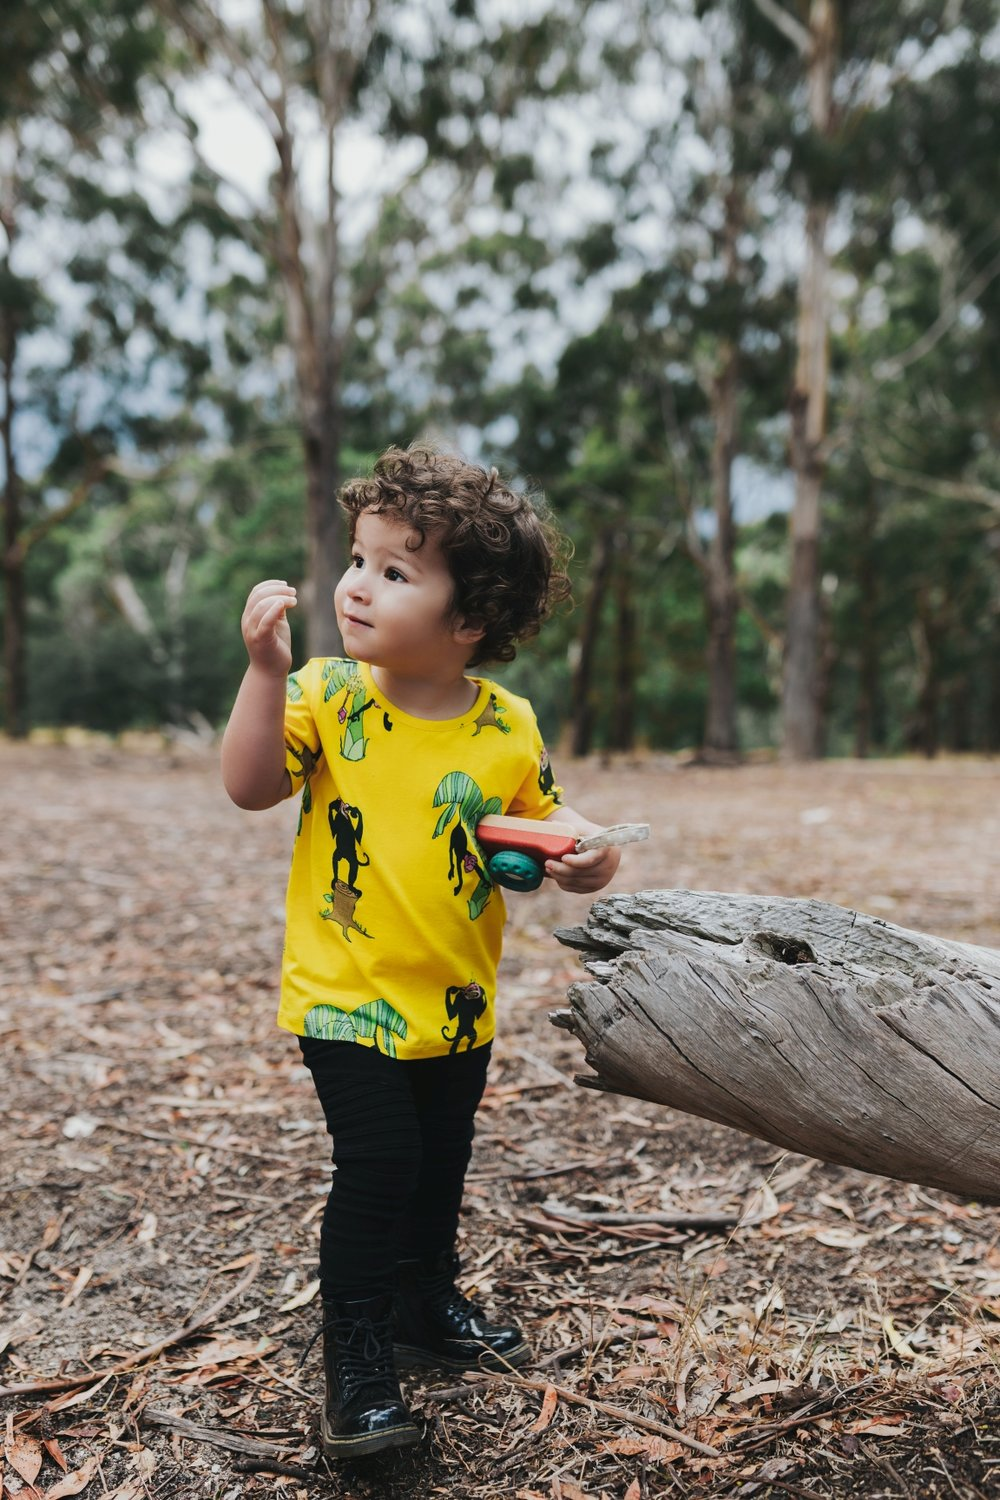 boy-yellow-tshirt-commercial-photography-siida-tasmania.jpg